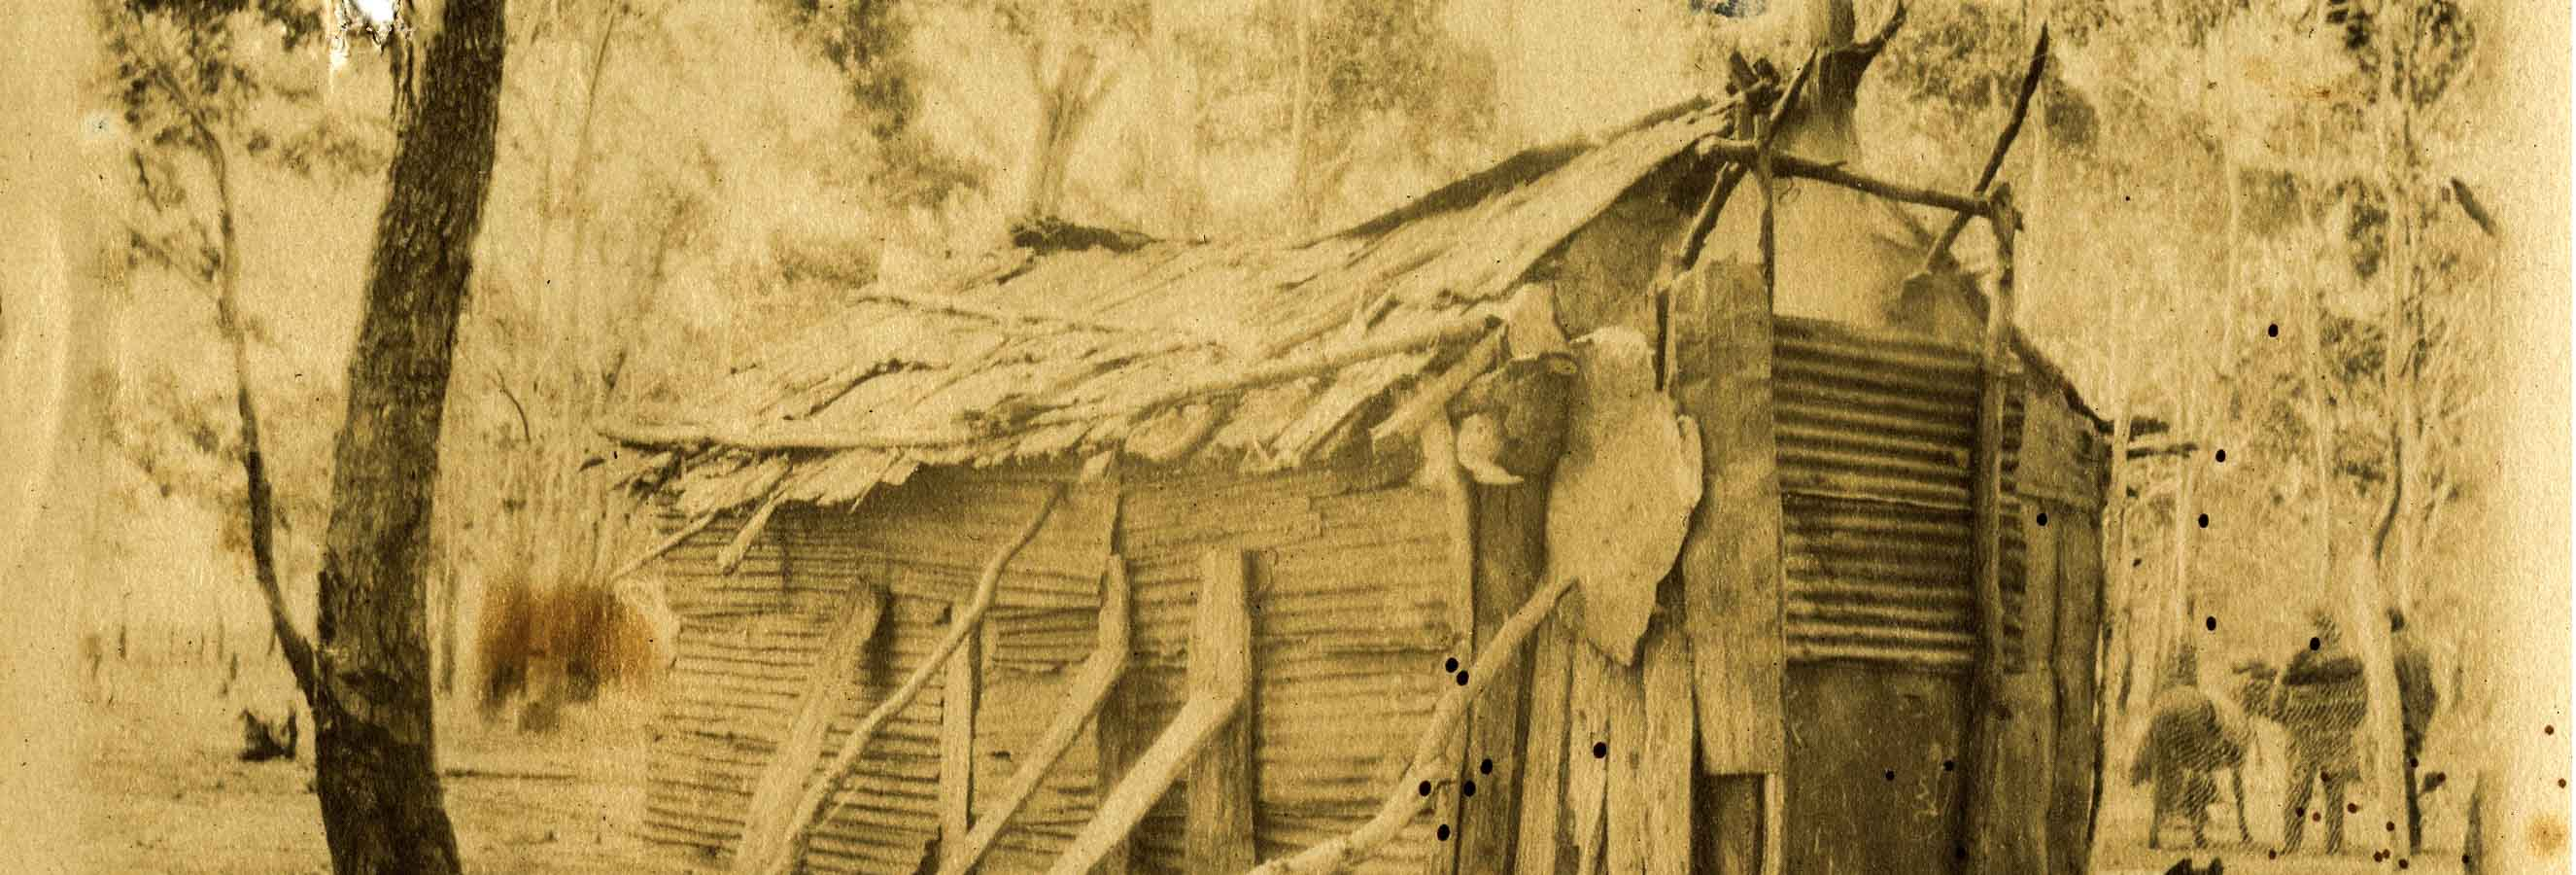 Sepia drawing of a shack